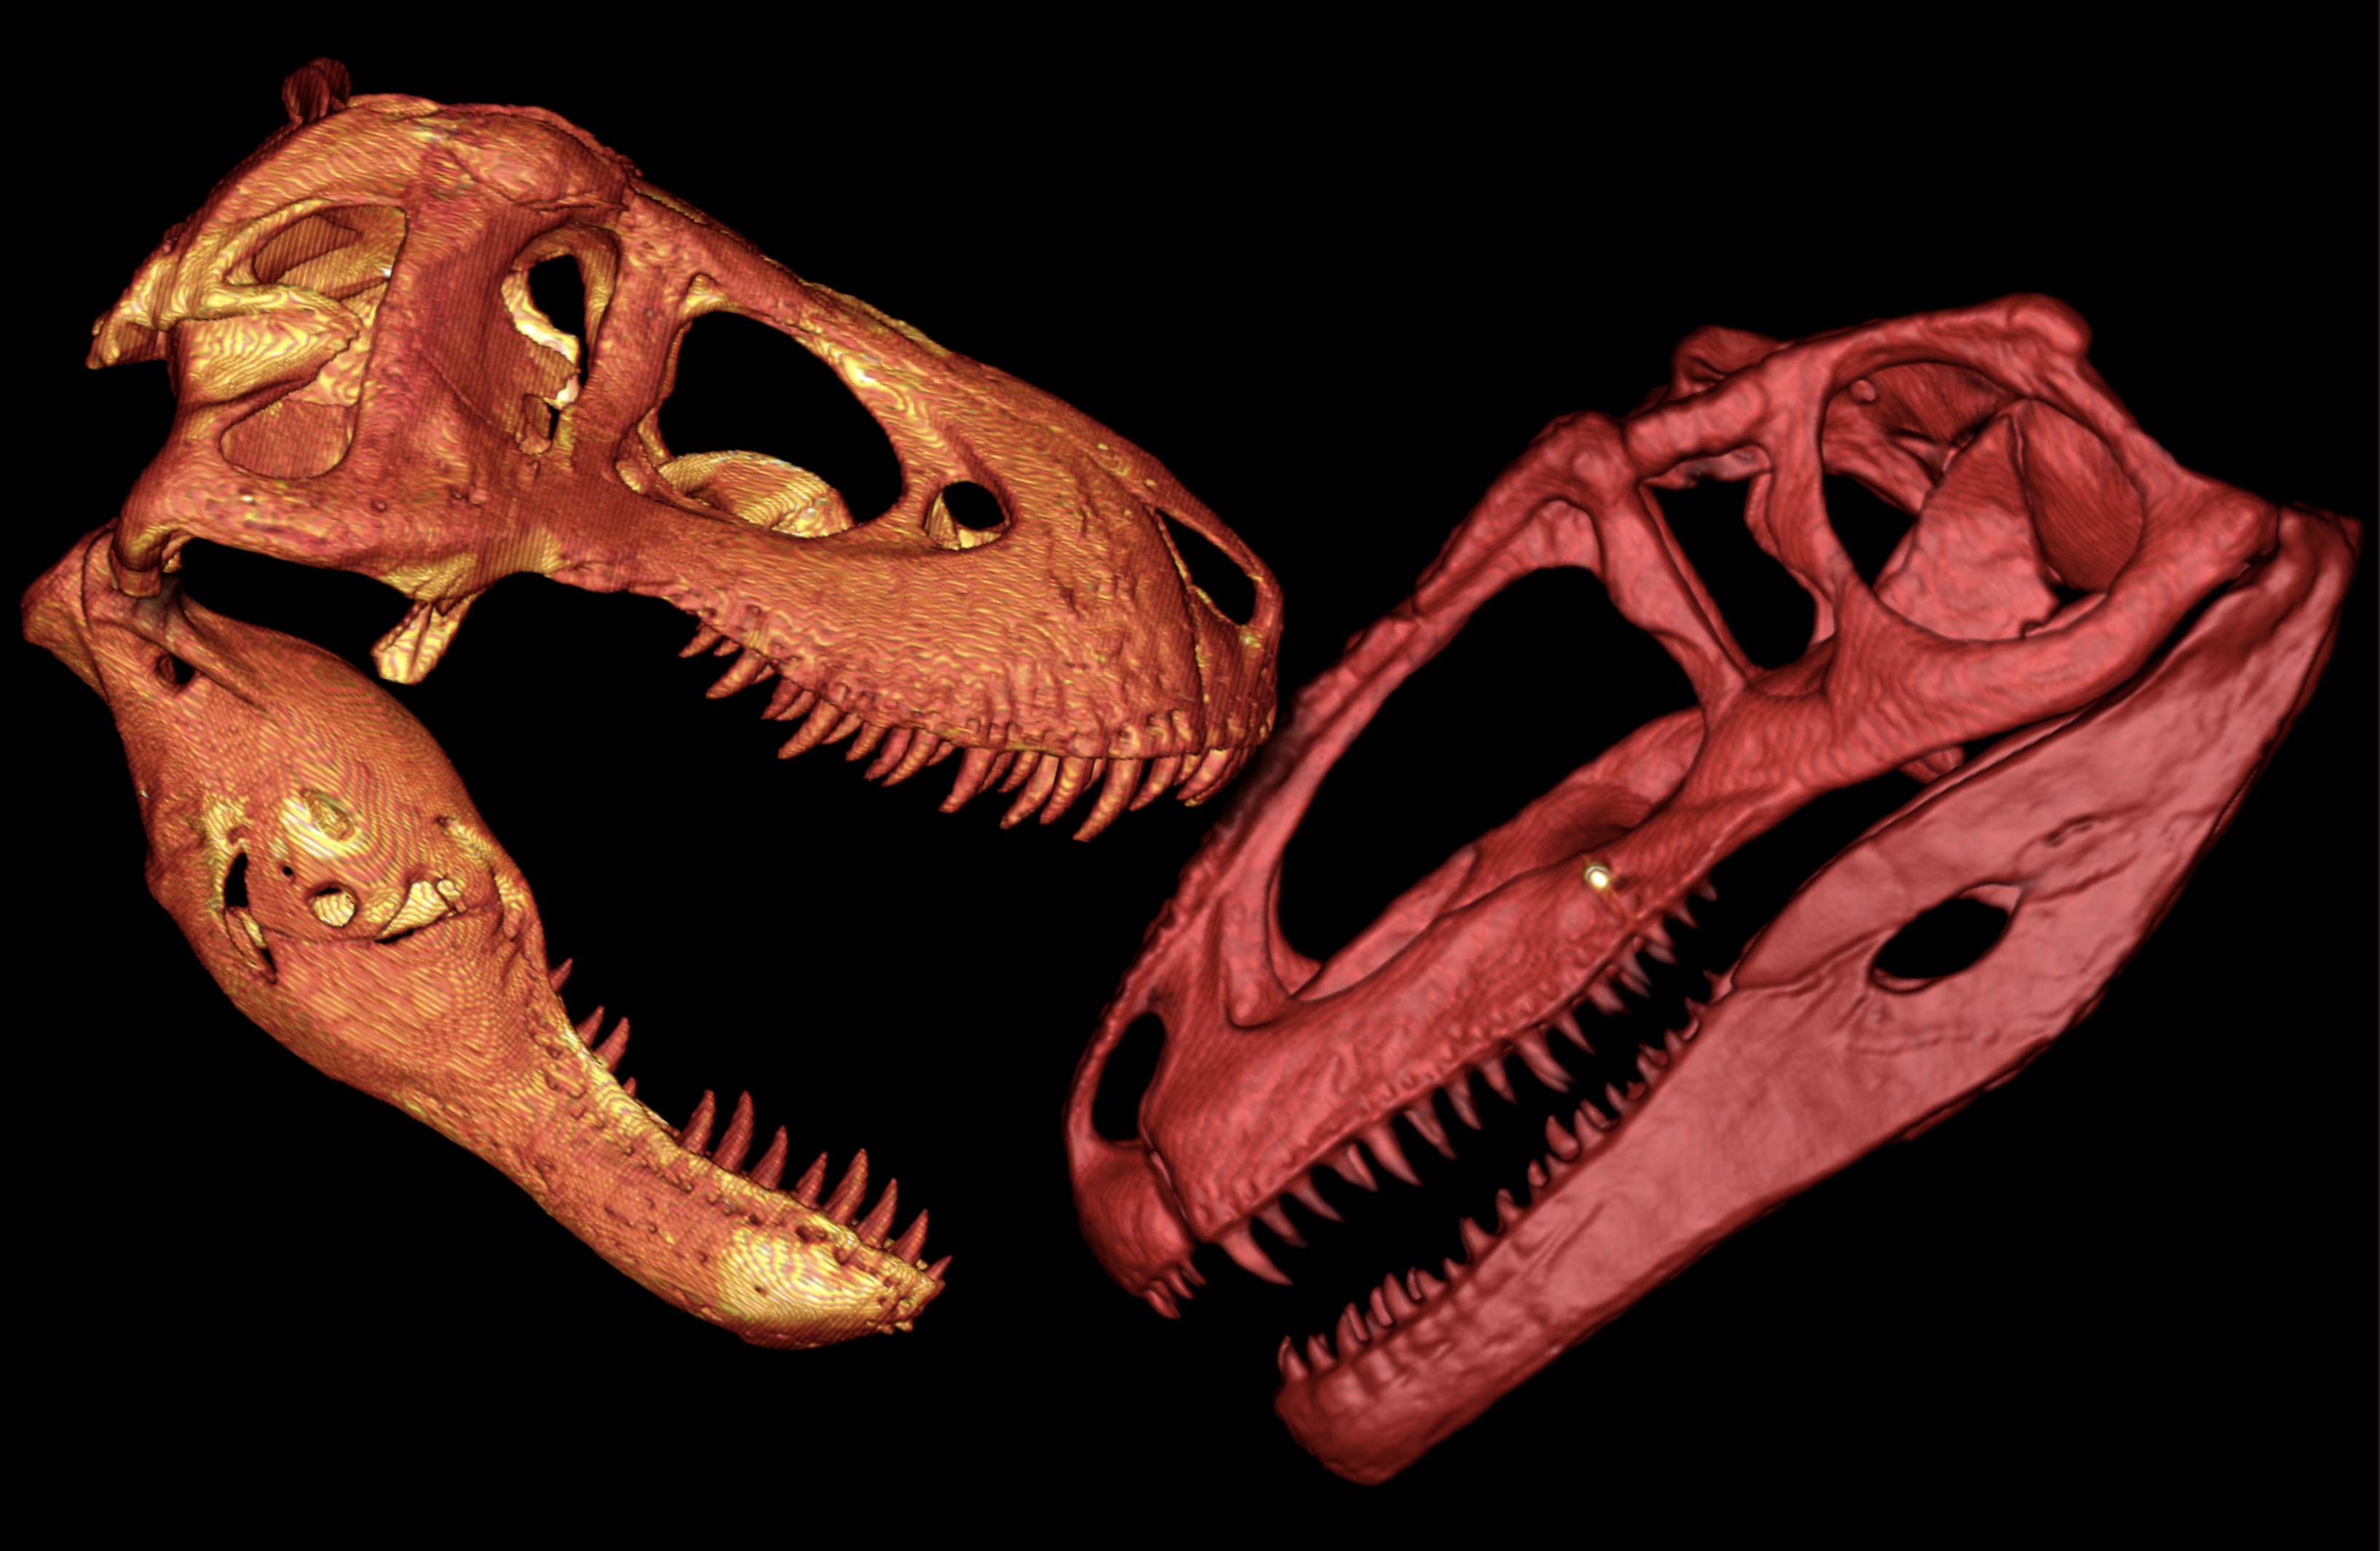 http://archosaurmusings.files.wordpress.com/2008/11/trex-giganotosaurus-comparison1.jpg